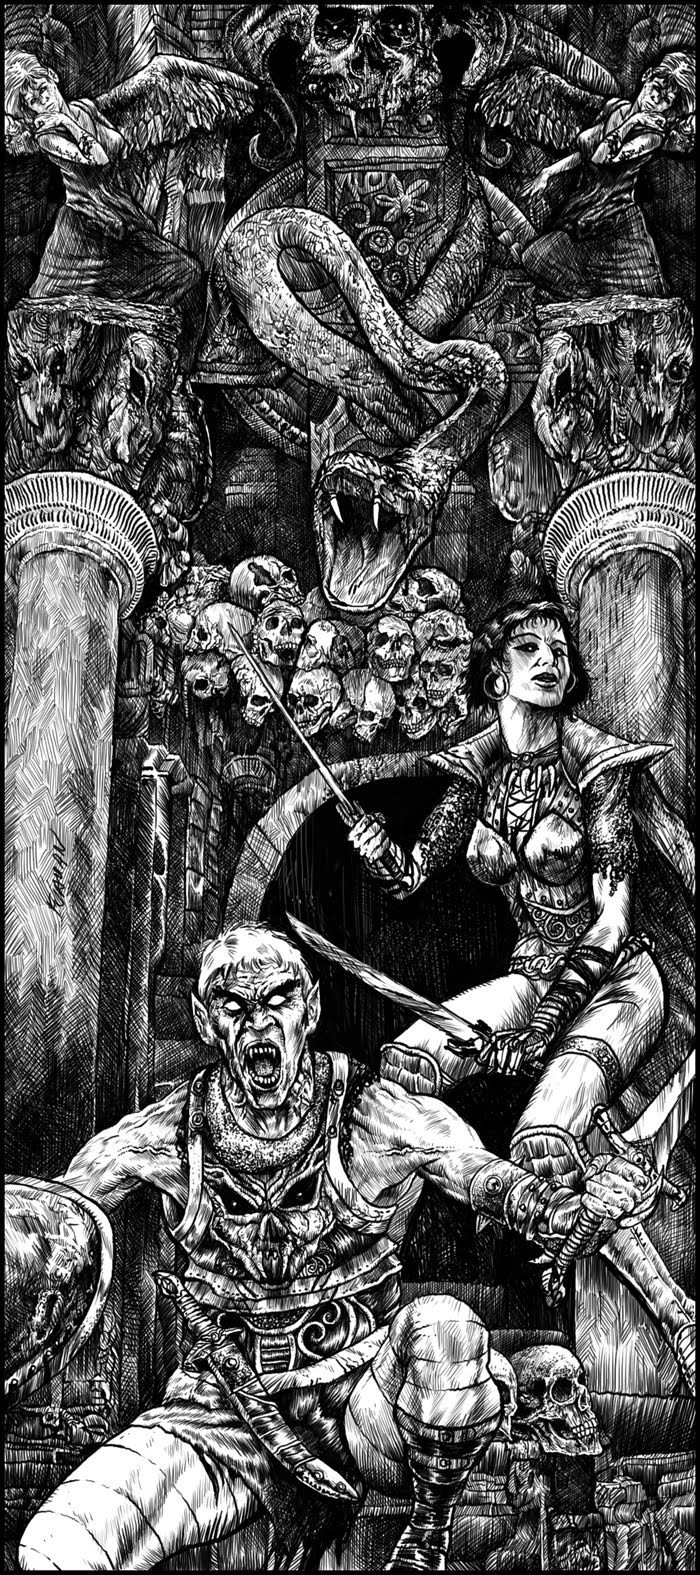 The elder scrolls V - BLABLA sur l'univers de Skyrim - Page 8 B+w-vampires-for-web-766841